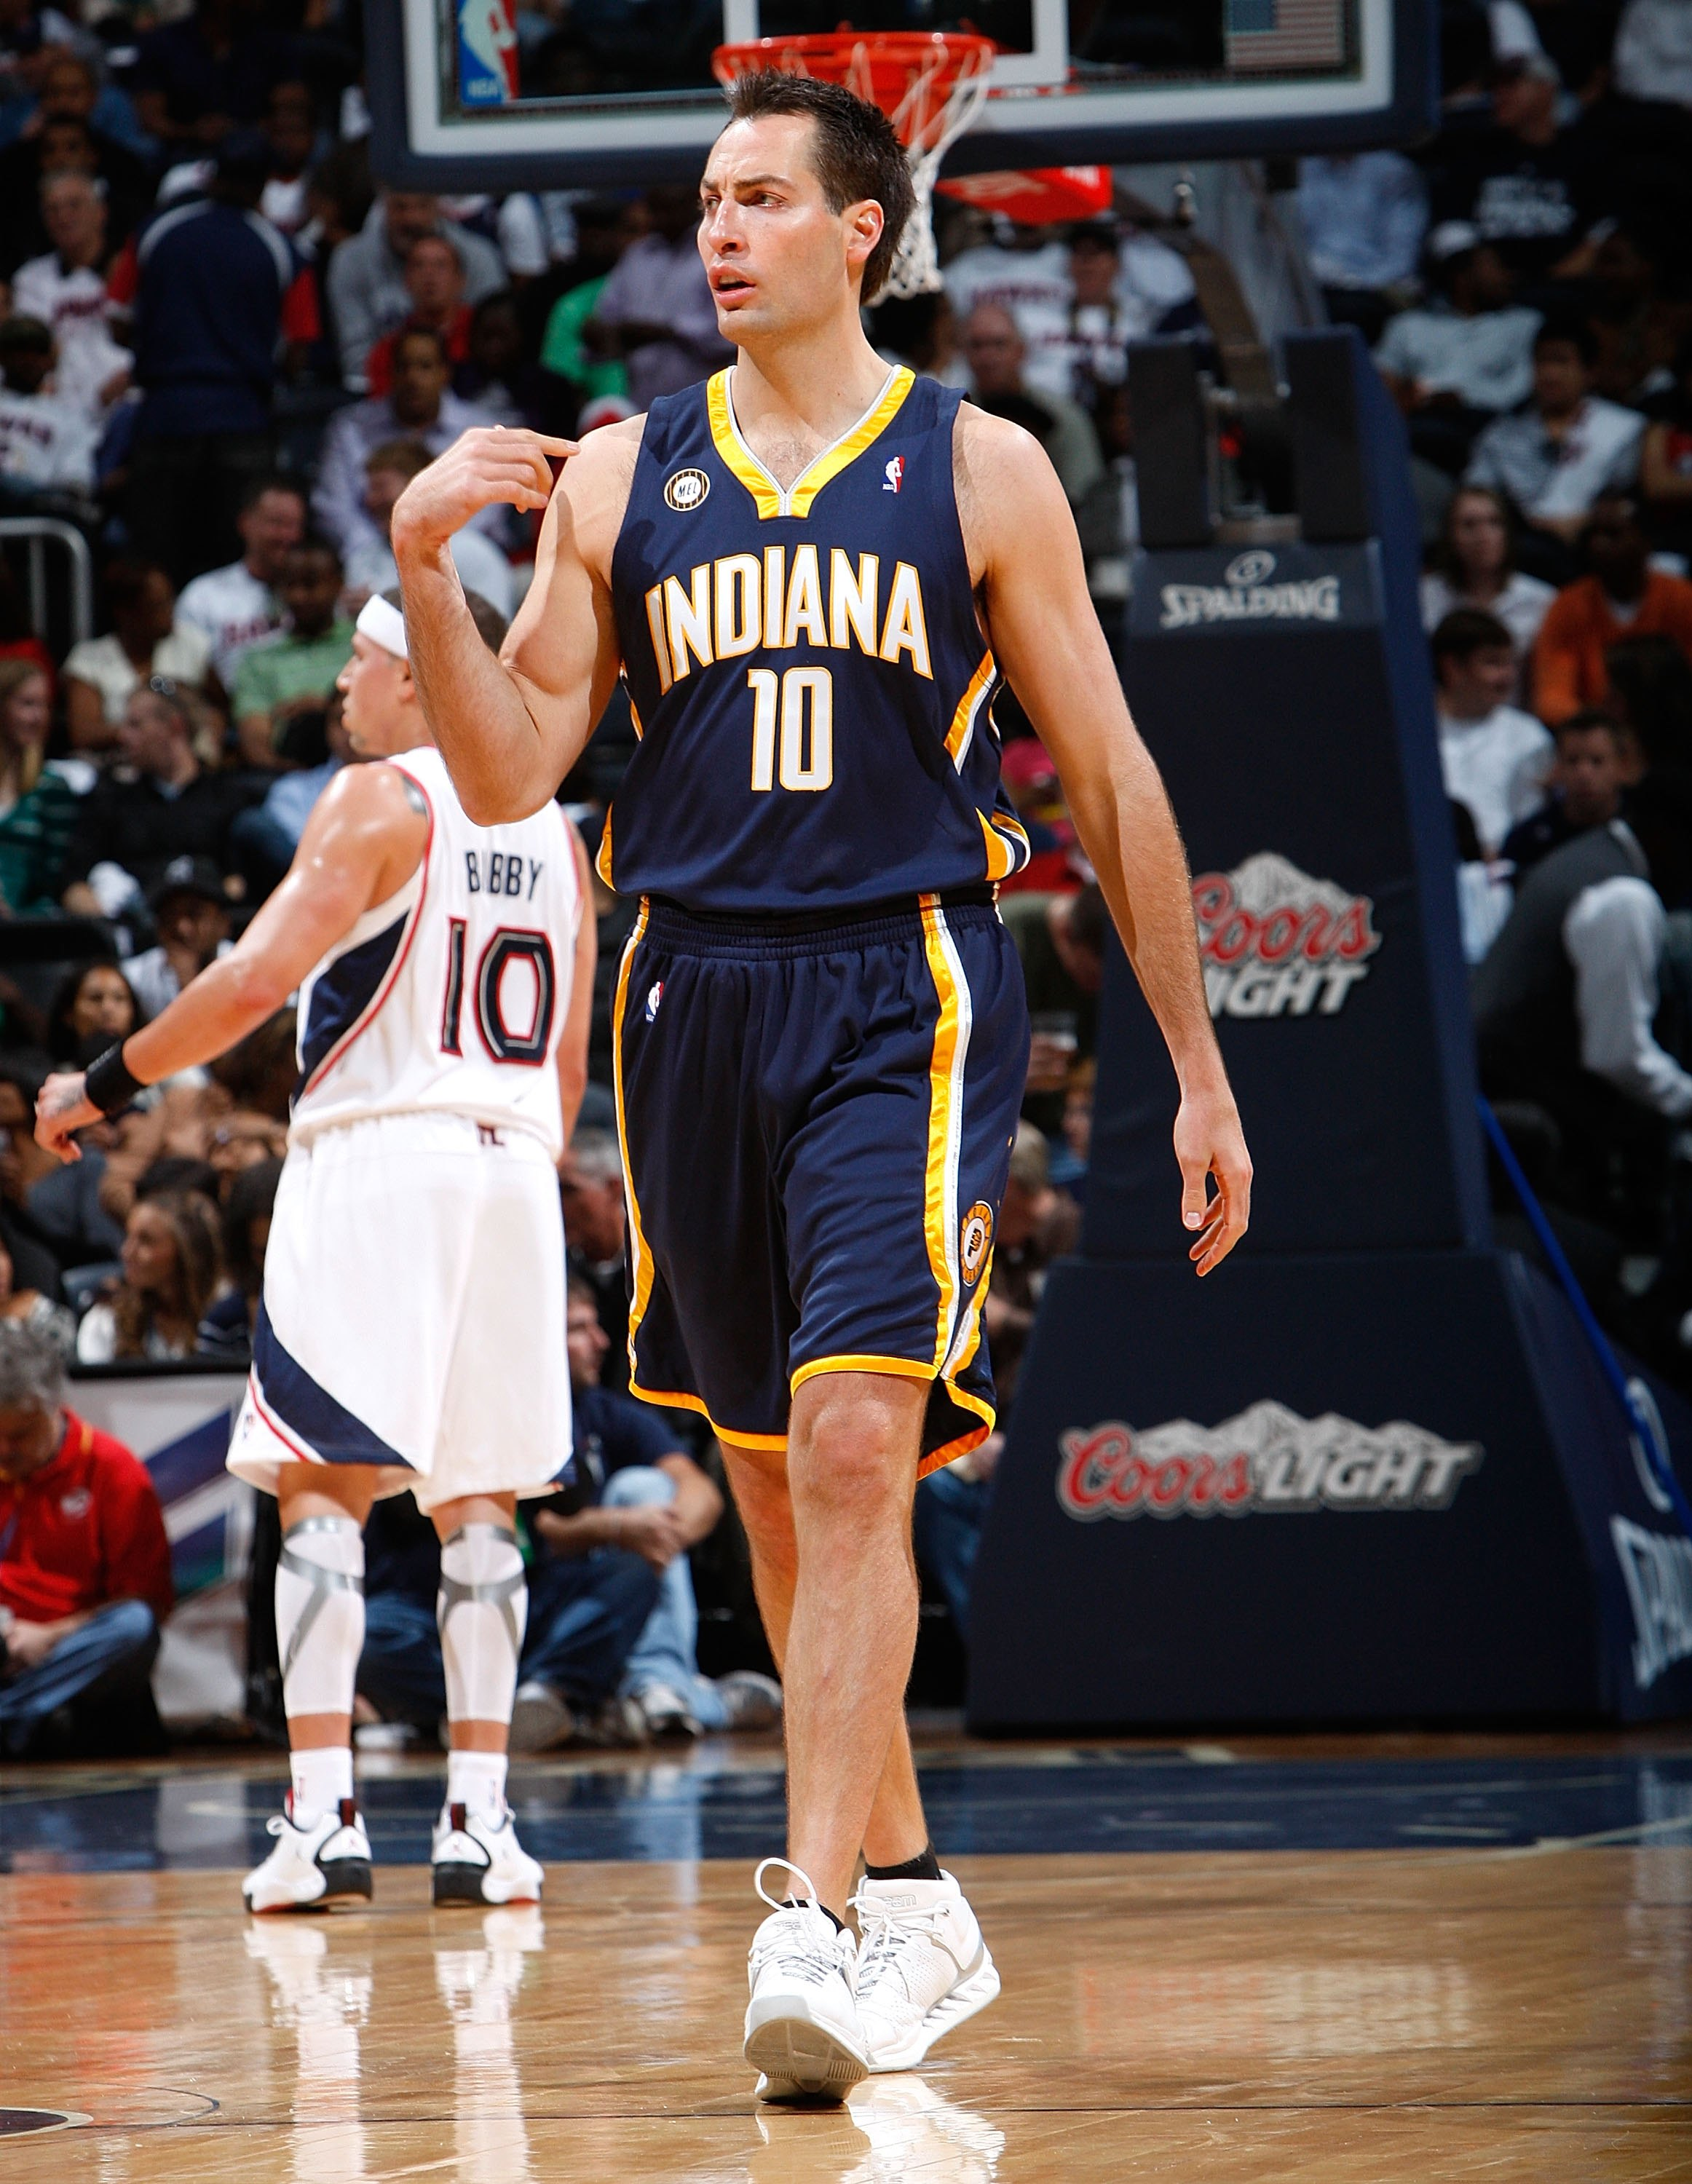 ATLANTA - OCTOBER 28:  Jeff Foster #10 of the Indiana Pacers against the Atlanta Hawks at Philips Arena on October 28, 2009 in Atlanta, Georgia.  (Photo by Kevin C. Cox/Getty Images)